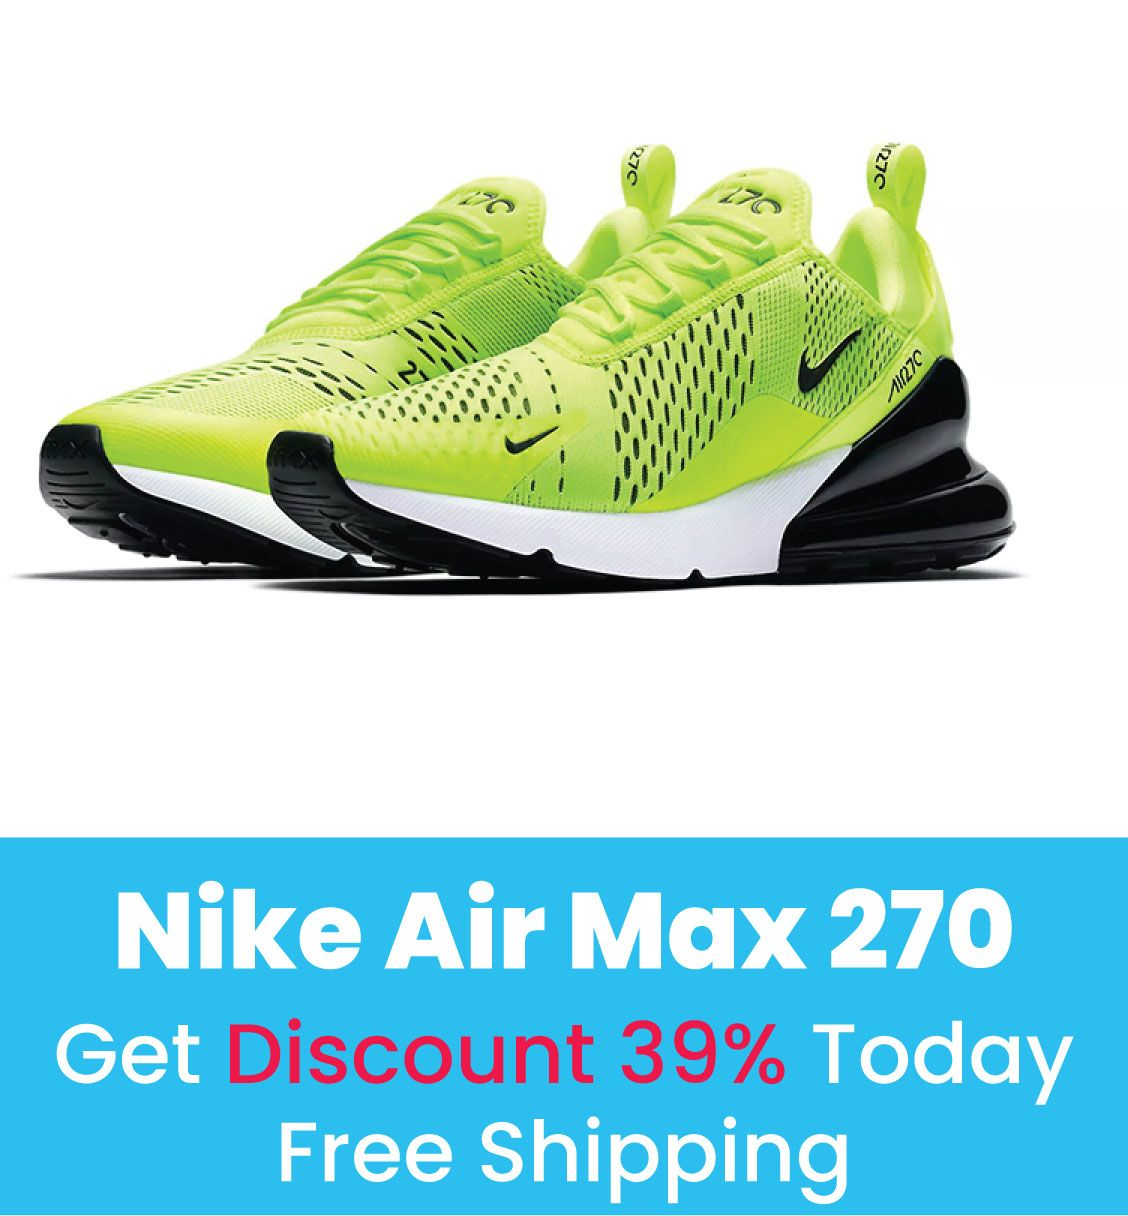 Shop the latest selection of Nike Air Max 270 Shoes at